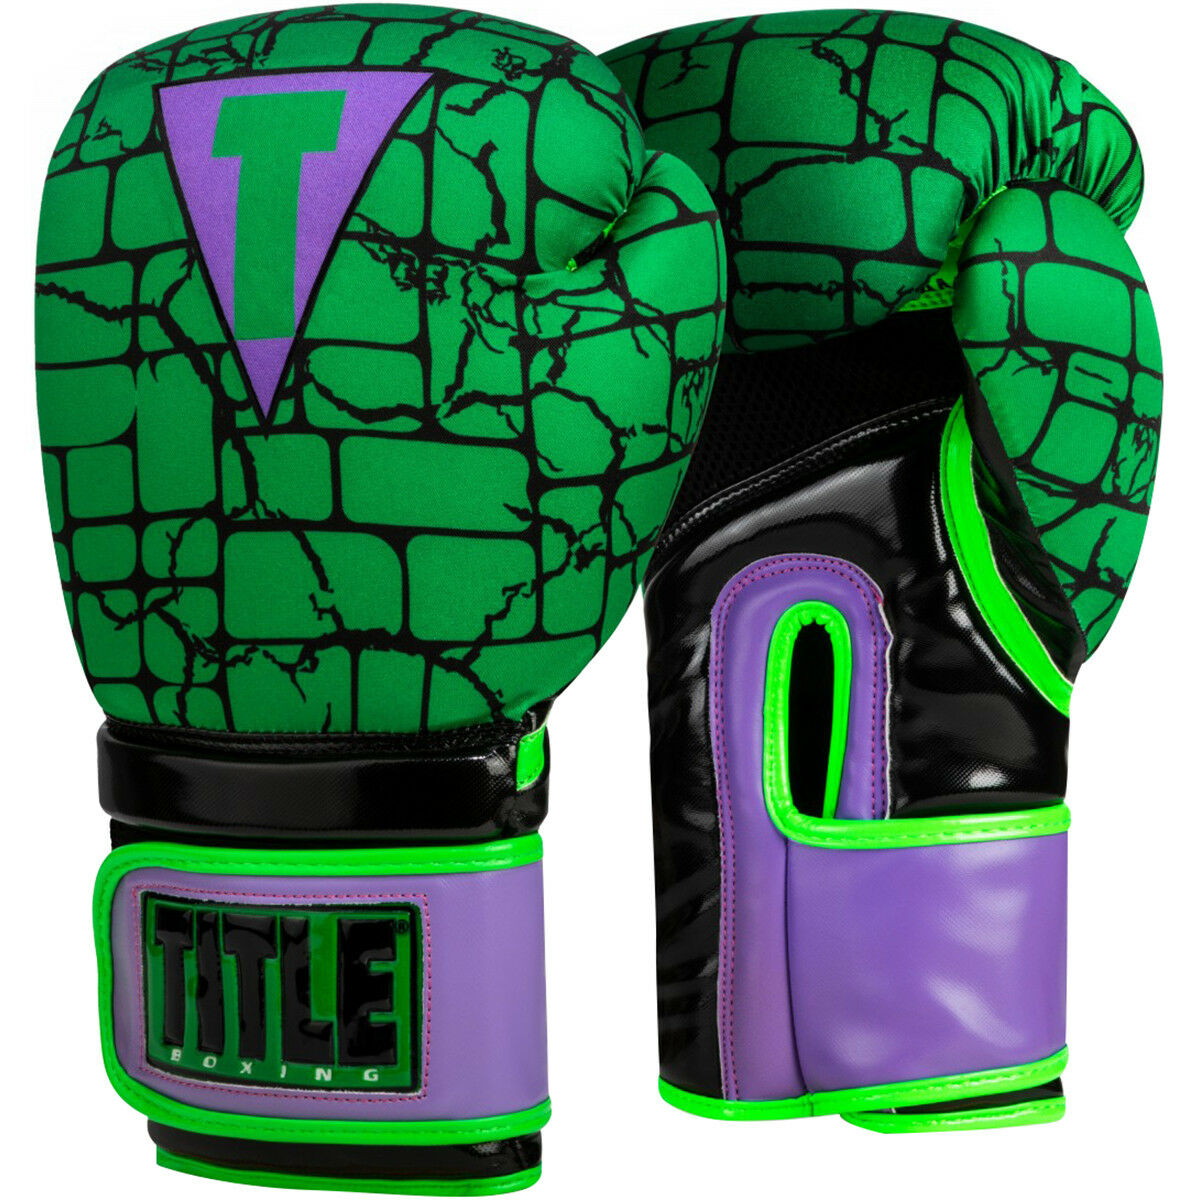 Title Boxing Infused Foam Training Boxing G  s - Goliath  large discount